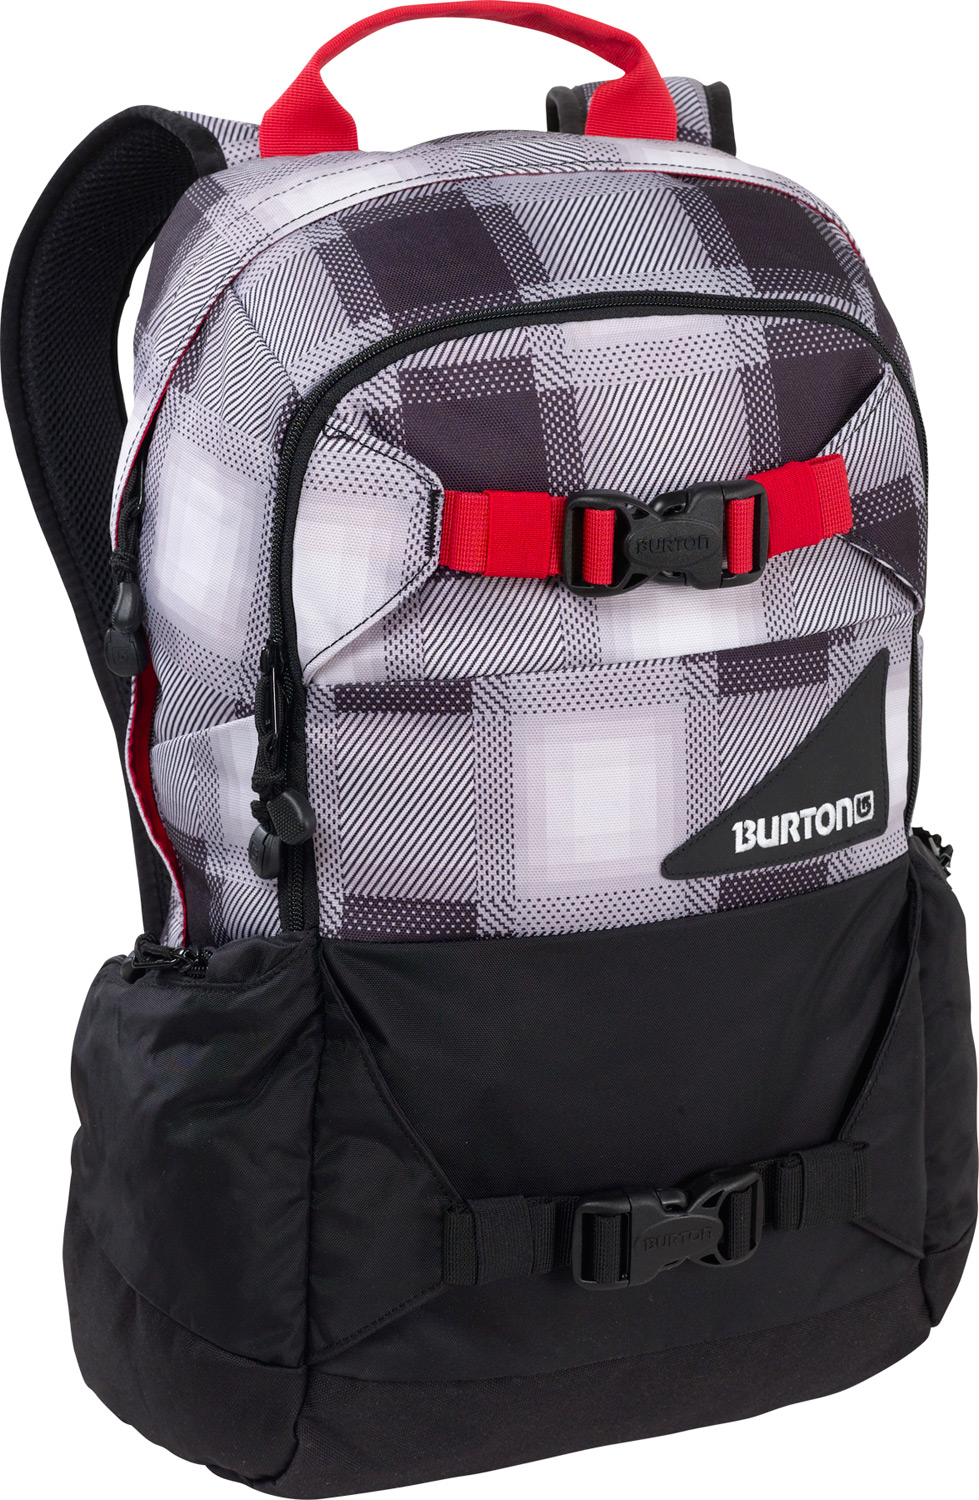 Camp and Hike Versatile, dependable, and durable, ready for any on or off-snow adventure.Key Features of the Burton Day Hiker 20L Backpack: Fabrication: 420D High-Density Nylon / 600D Polyester Cush Ergonomic Shoulder Harness and Ergonomic Back Panel Vertical Board Carry Easy Access Internal Shovel Storage Pocket Padded Laptop Compartment [20L Only] [12 in. x 10.5 in. x 1.5 in.] Fleece-Lined Goggle / Sound Pocket Hydration Compatible Waist Strap Dimensions: [19 x 11 x 8 in.] - $38.95